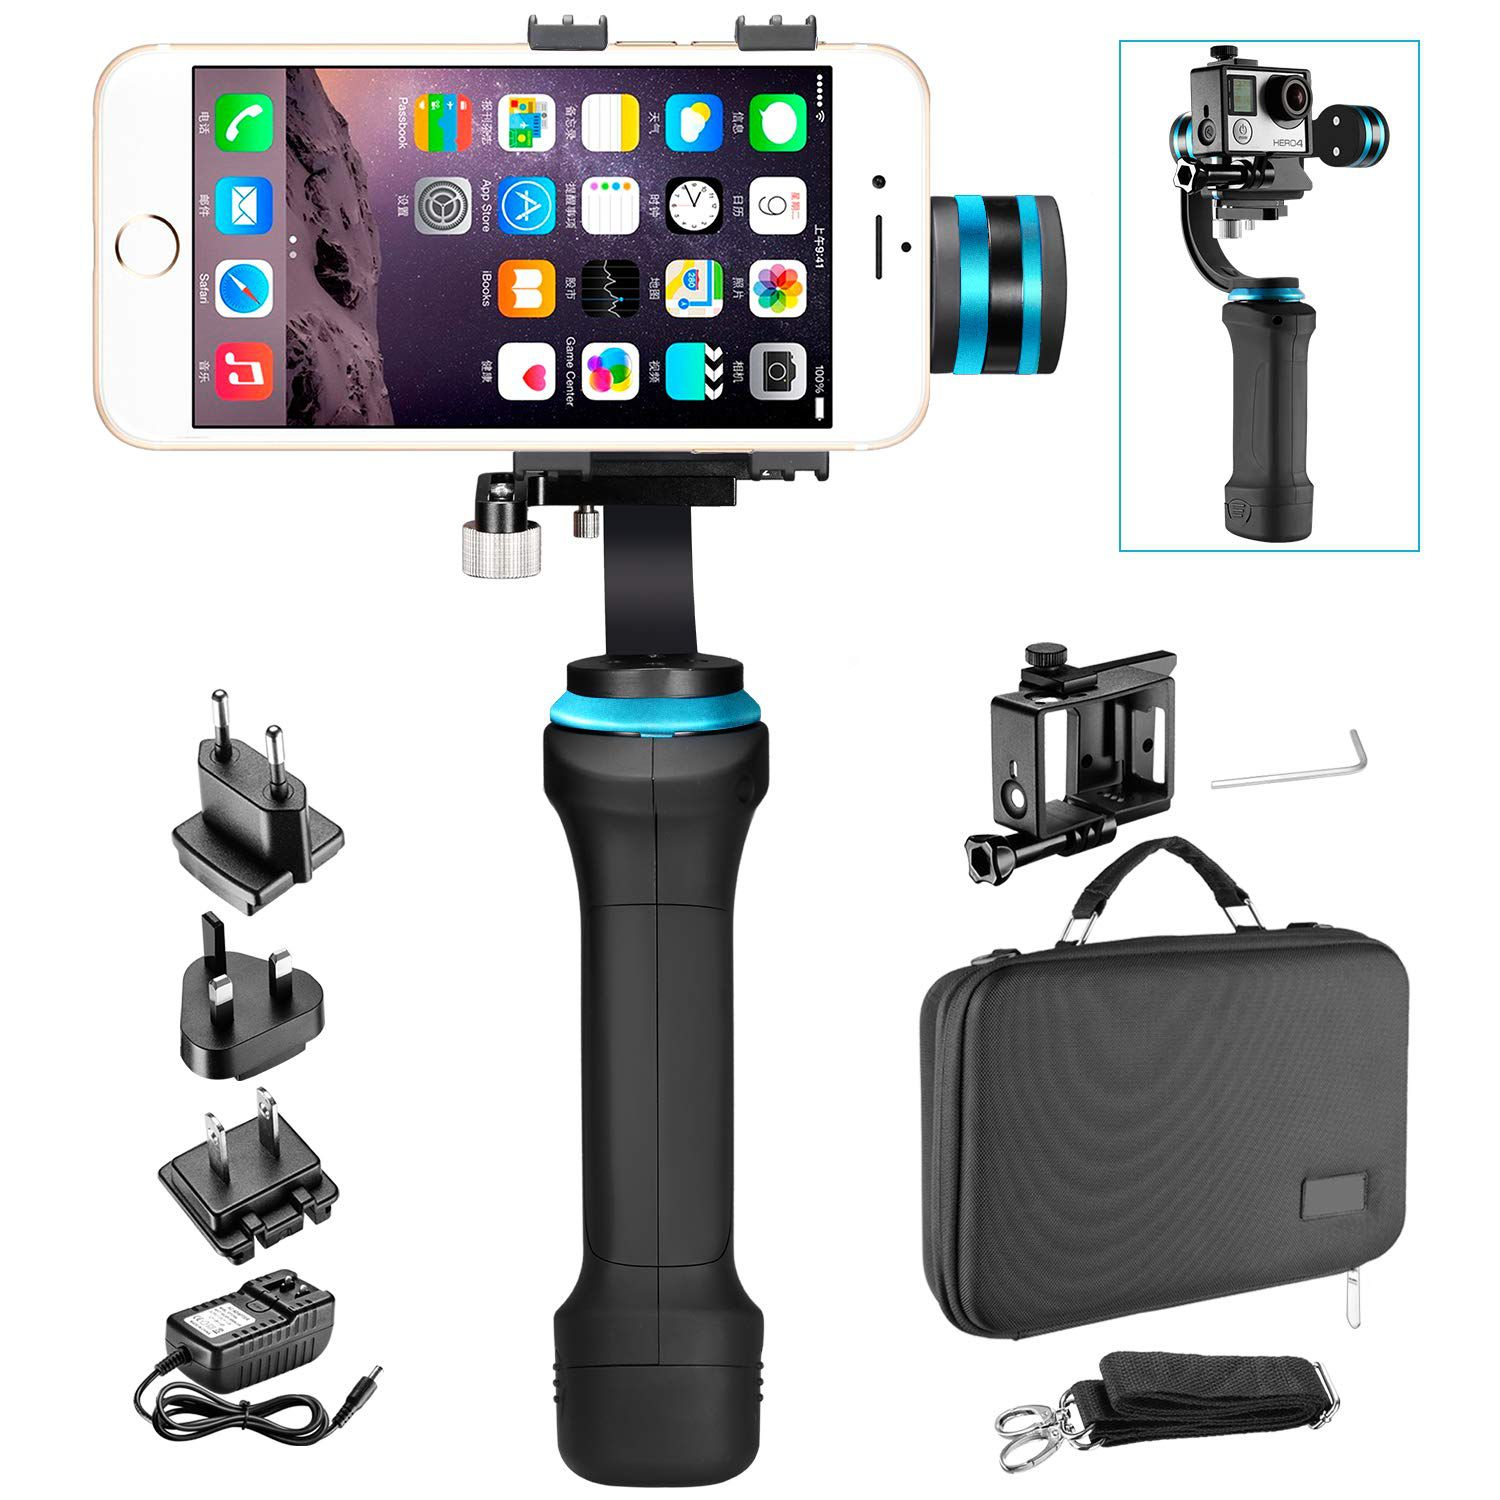 Estabilizador para Smarthphone e GoPro – Neewer